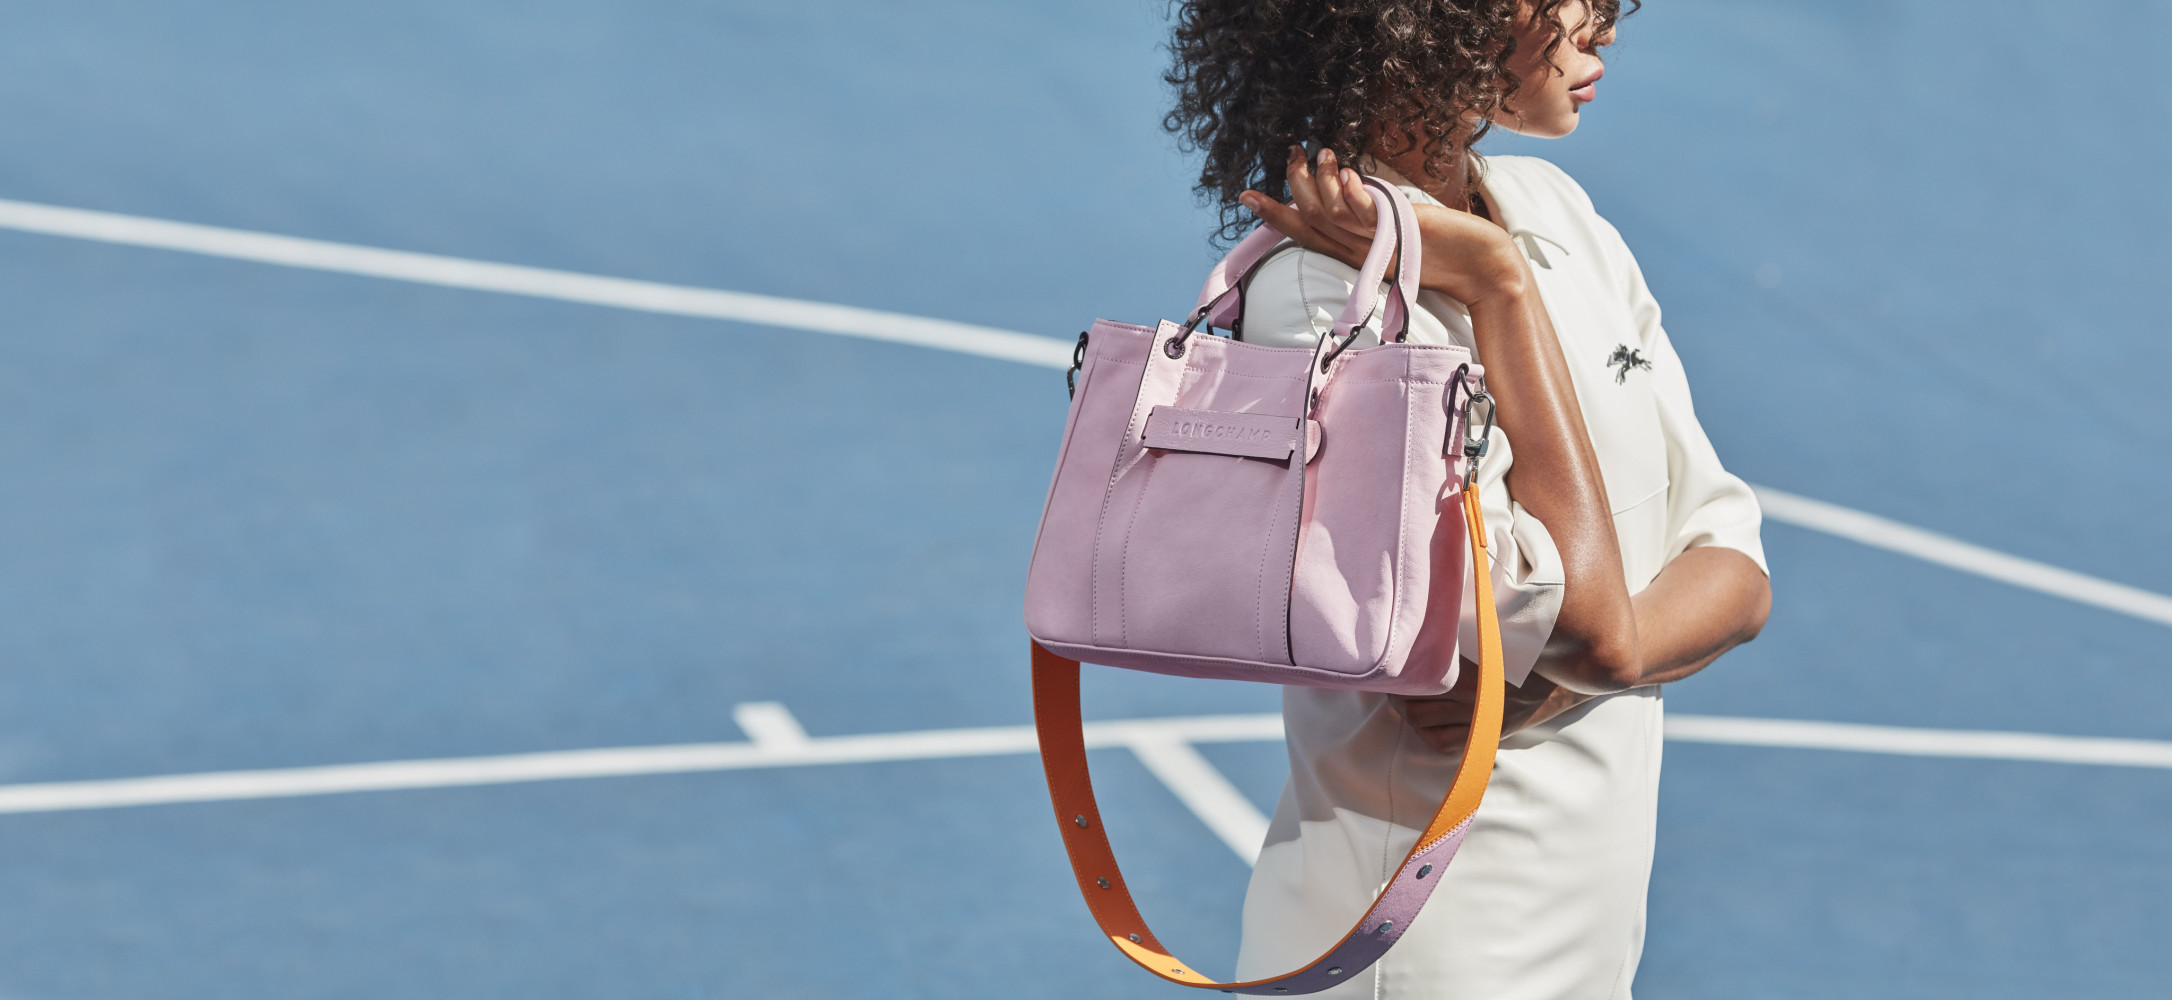 ZAINA GOHOU FOR LONGCHAMP PARIS CAMPAIGN